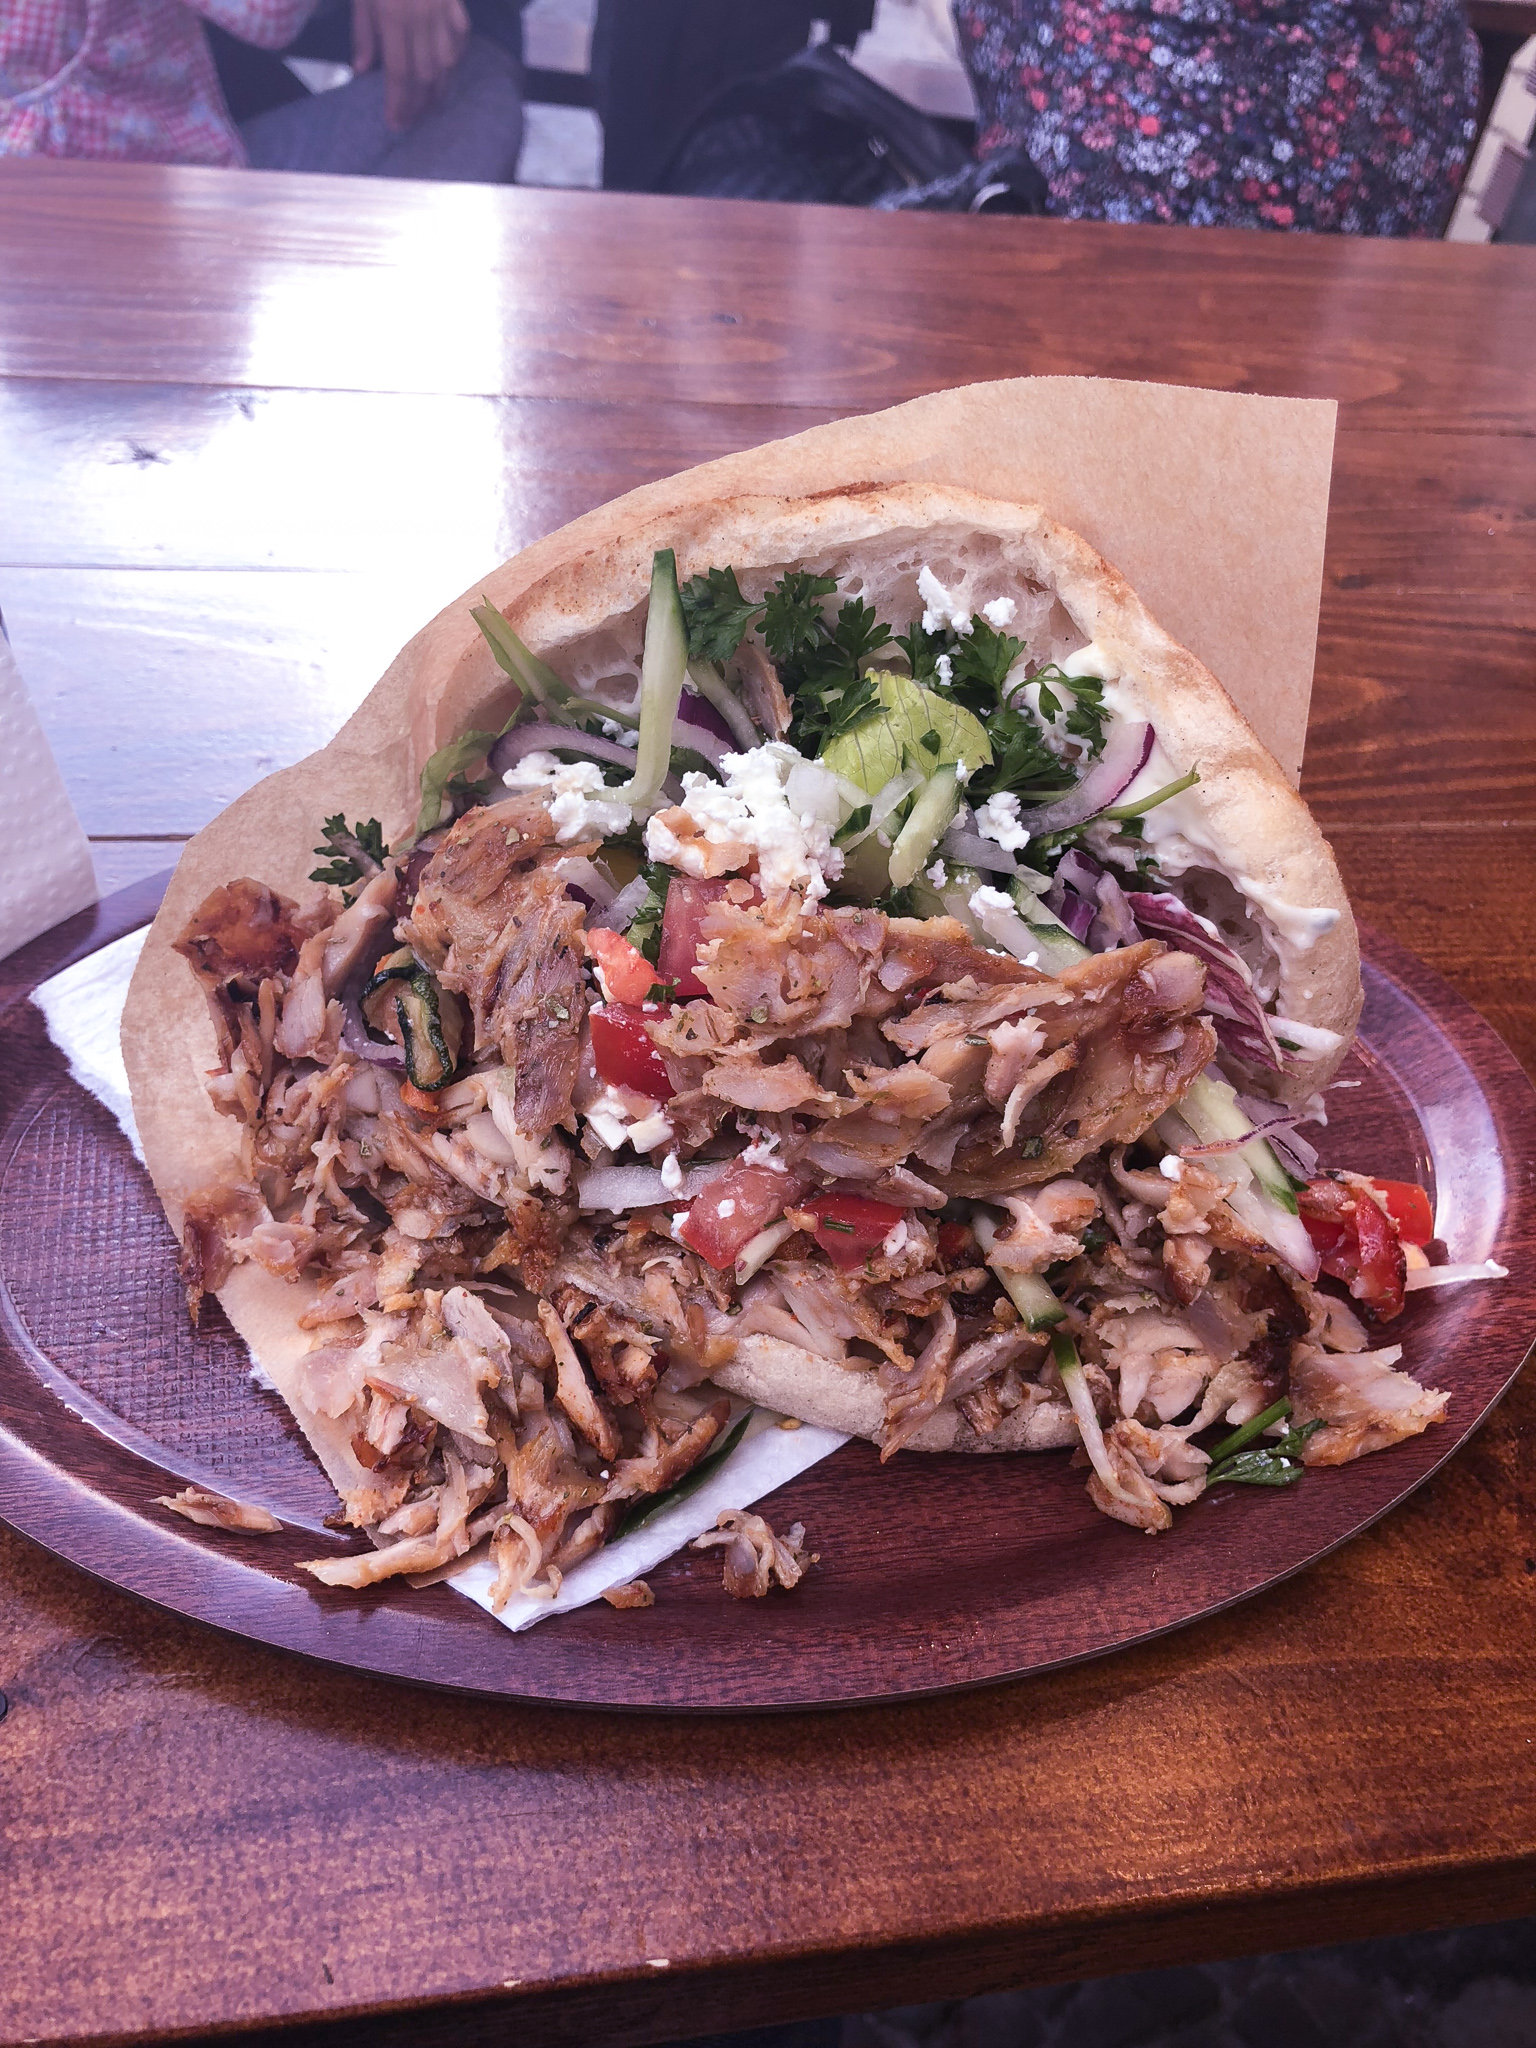 the one, the only: A beautiful döner